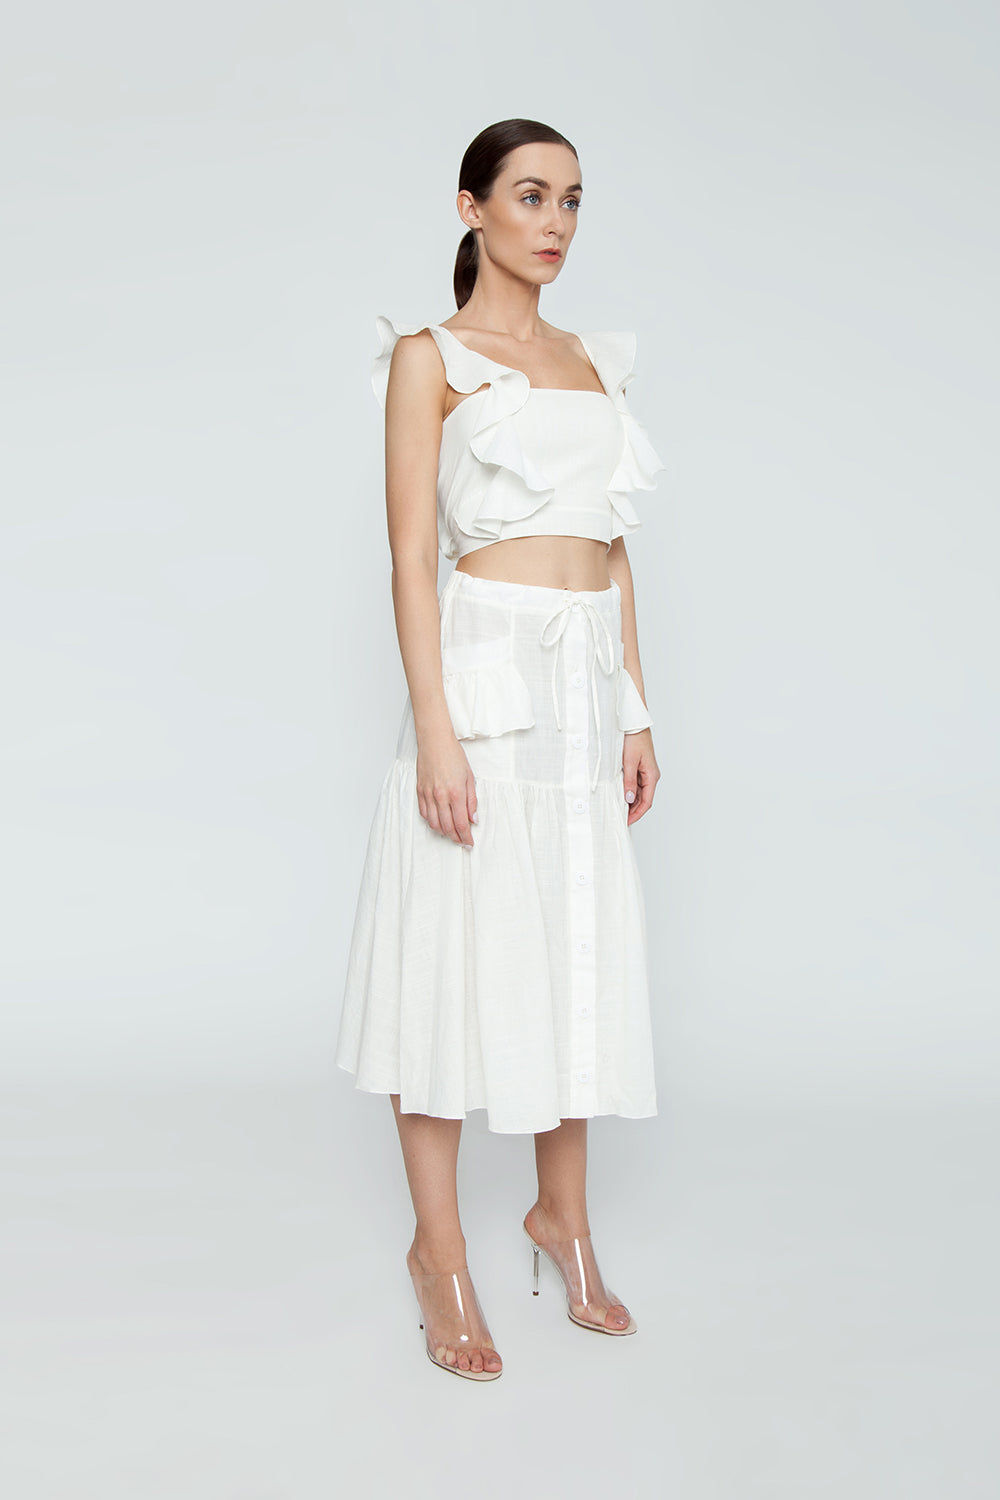 CLUBE BOSSA Lubba Cropped Blouse - Off White Top   Off White  Clube Bossa Lubba Cropped Blouse - Off White Features:  Square neckline Ruffle shoulders Back lace-up fastening 100% Cotton Side View